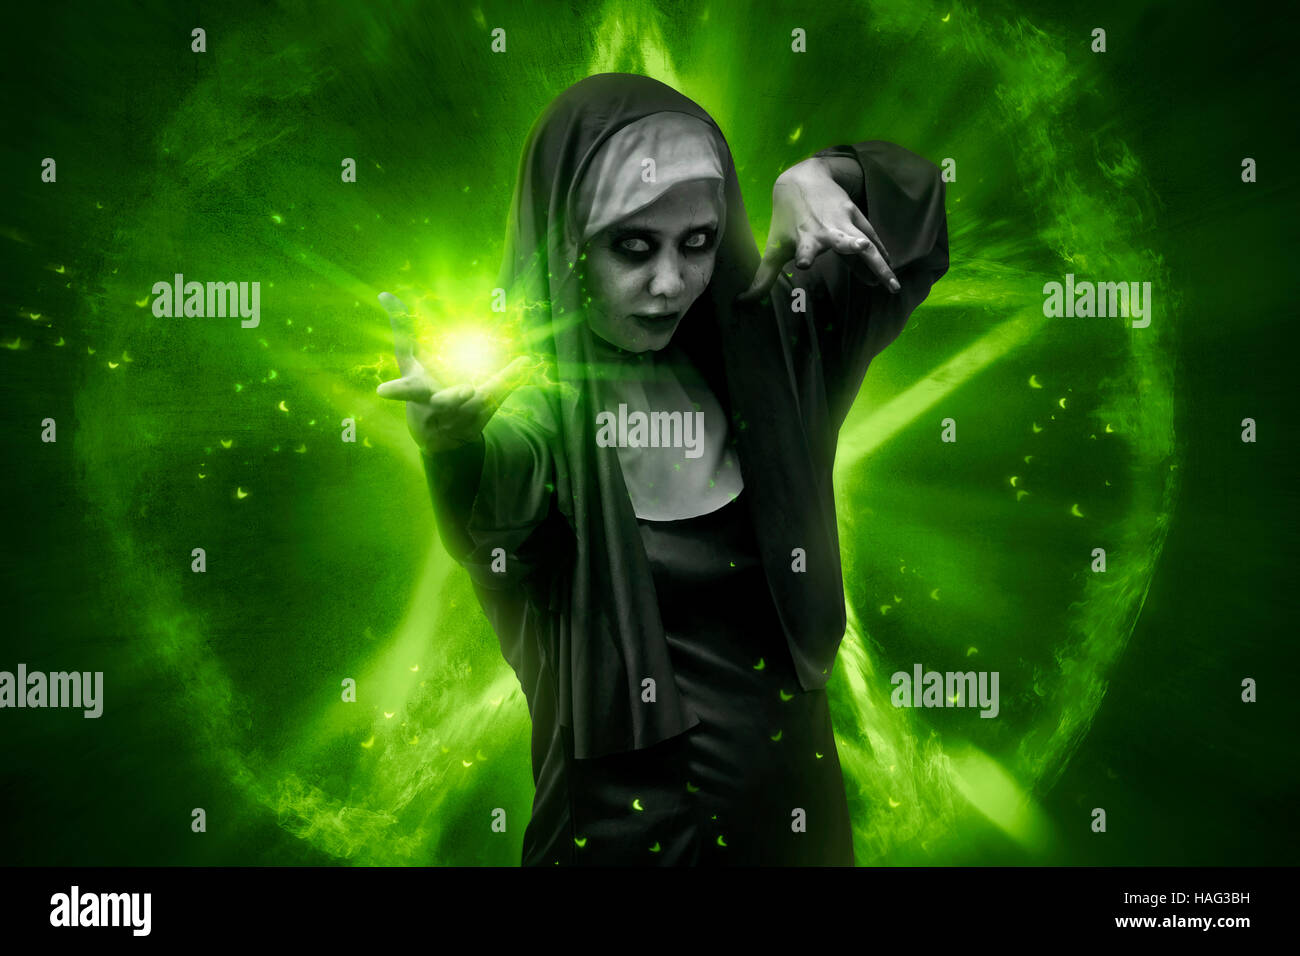 scary asian nun casting spell. halloween concept image stock photo